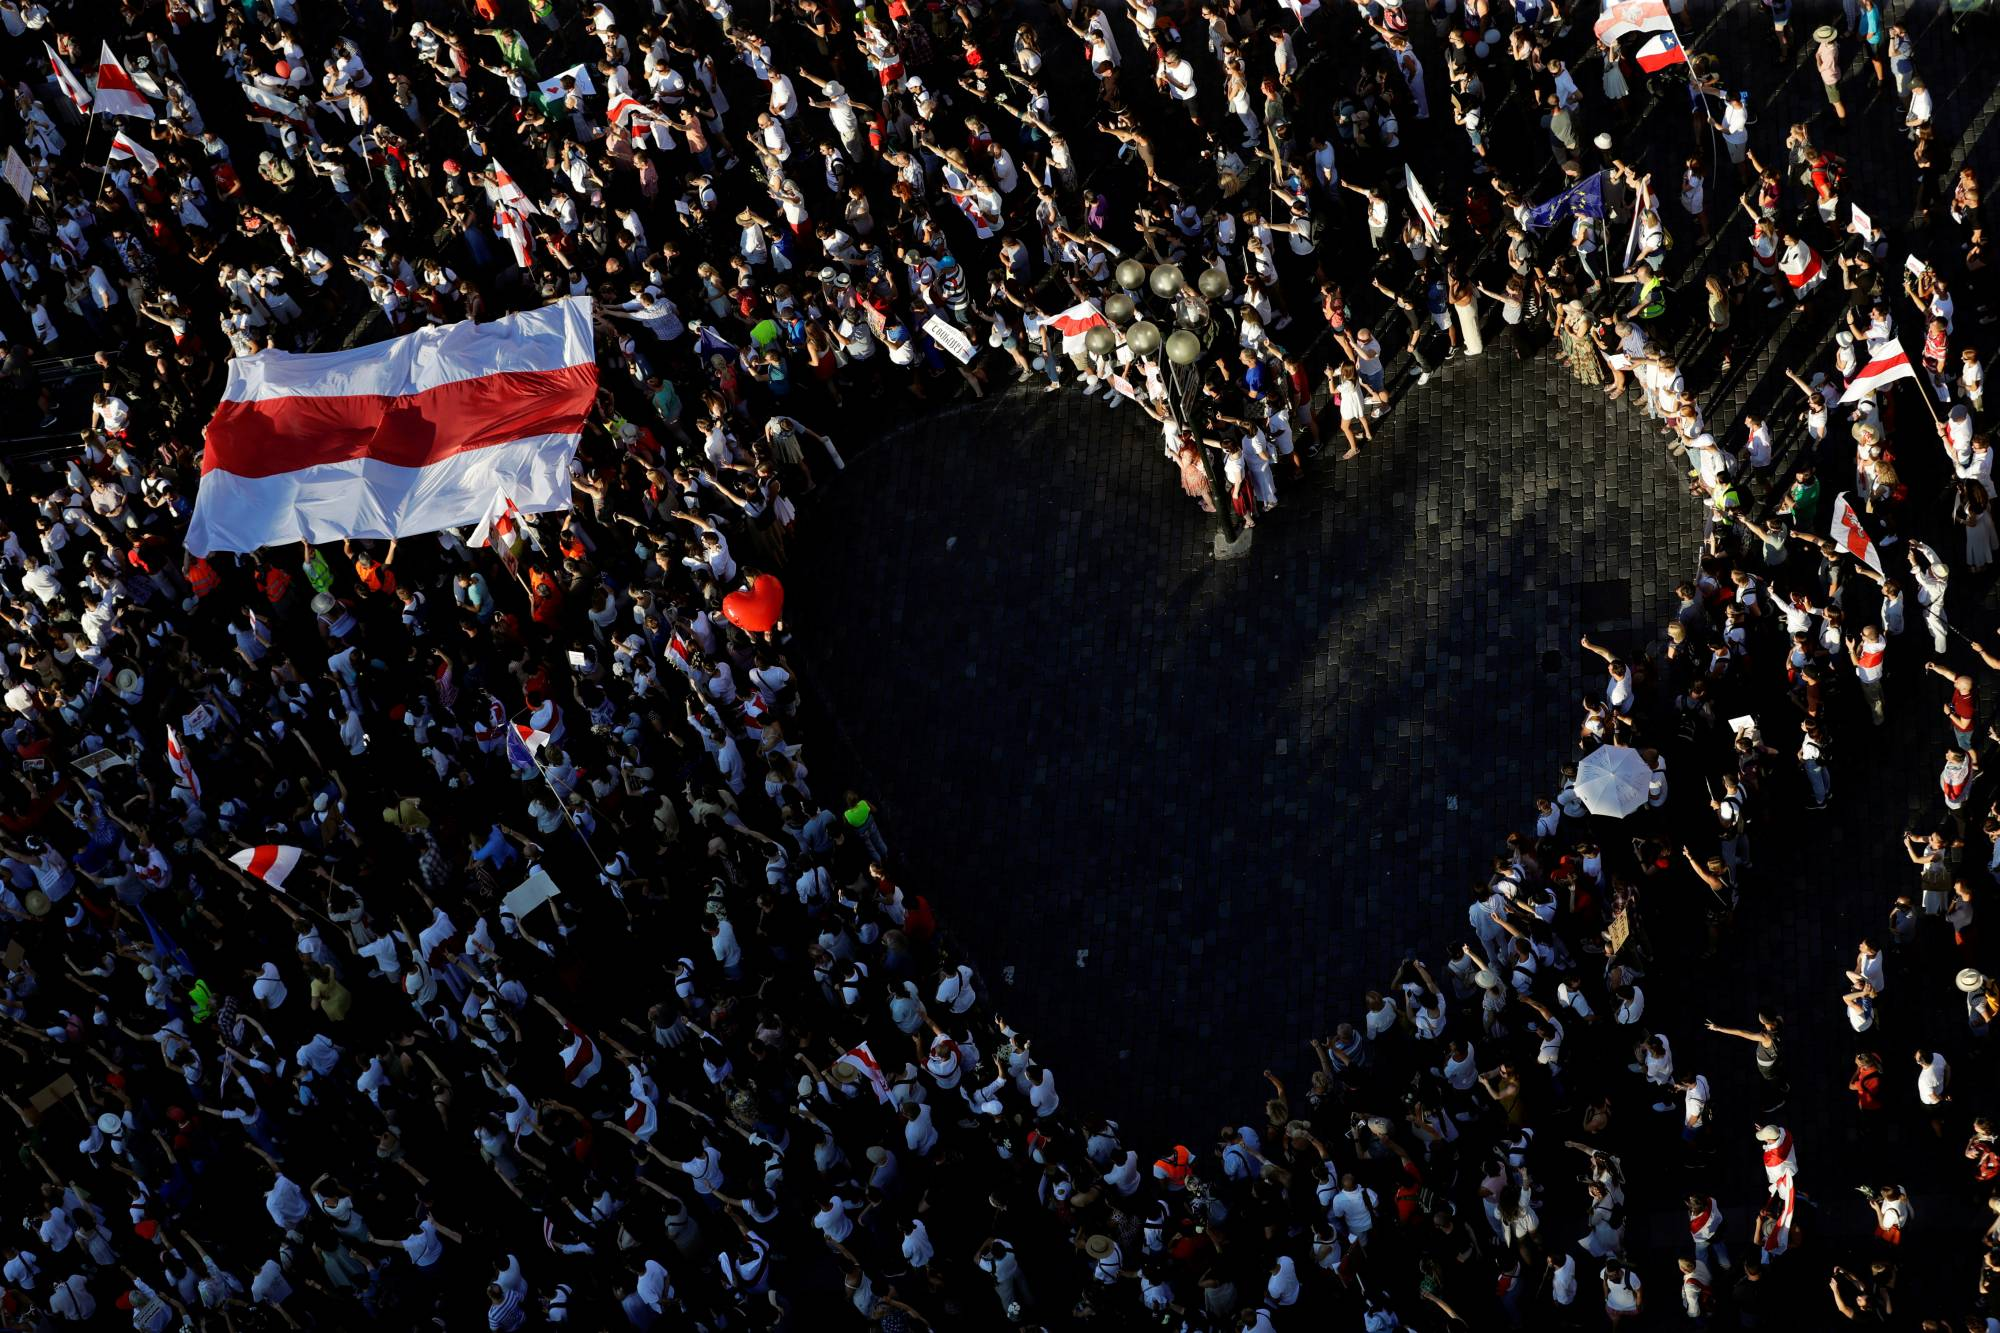 In Prague, a large historical white-red-white flag of Belarus is held up on Sunday next to demonstrators forming a heart during a protest against the results of the Belarusian presidential election. | REUTERS